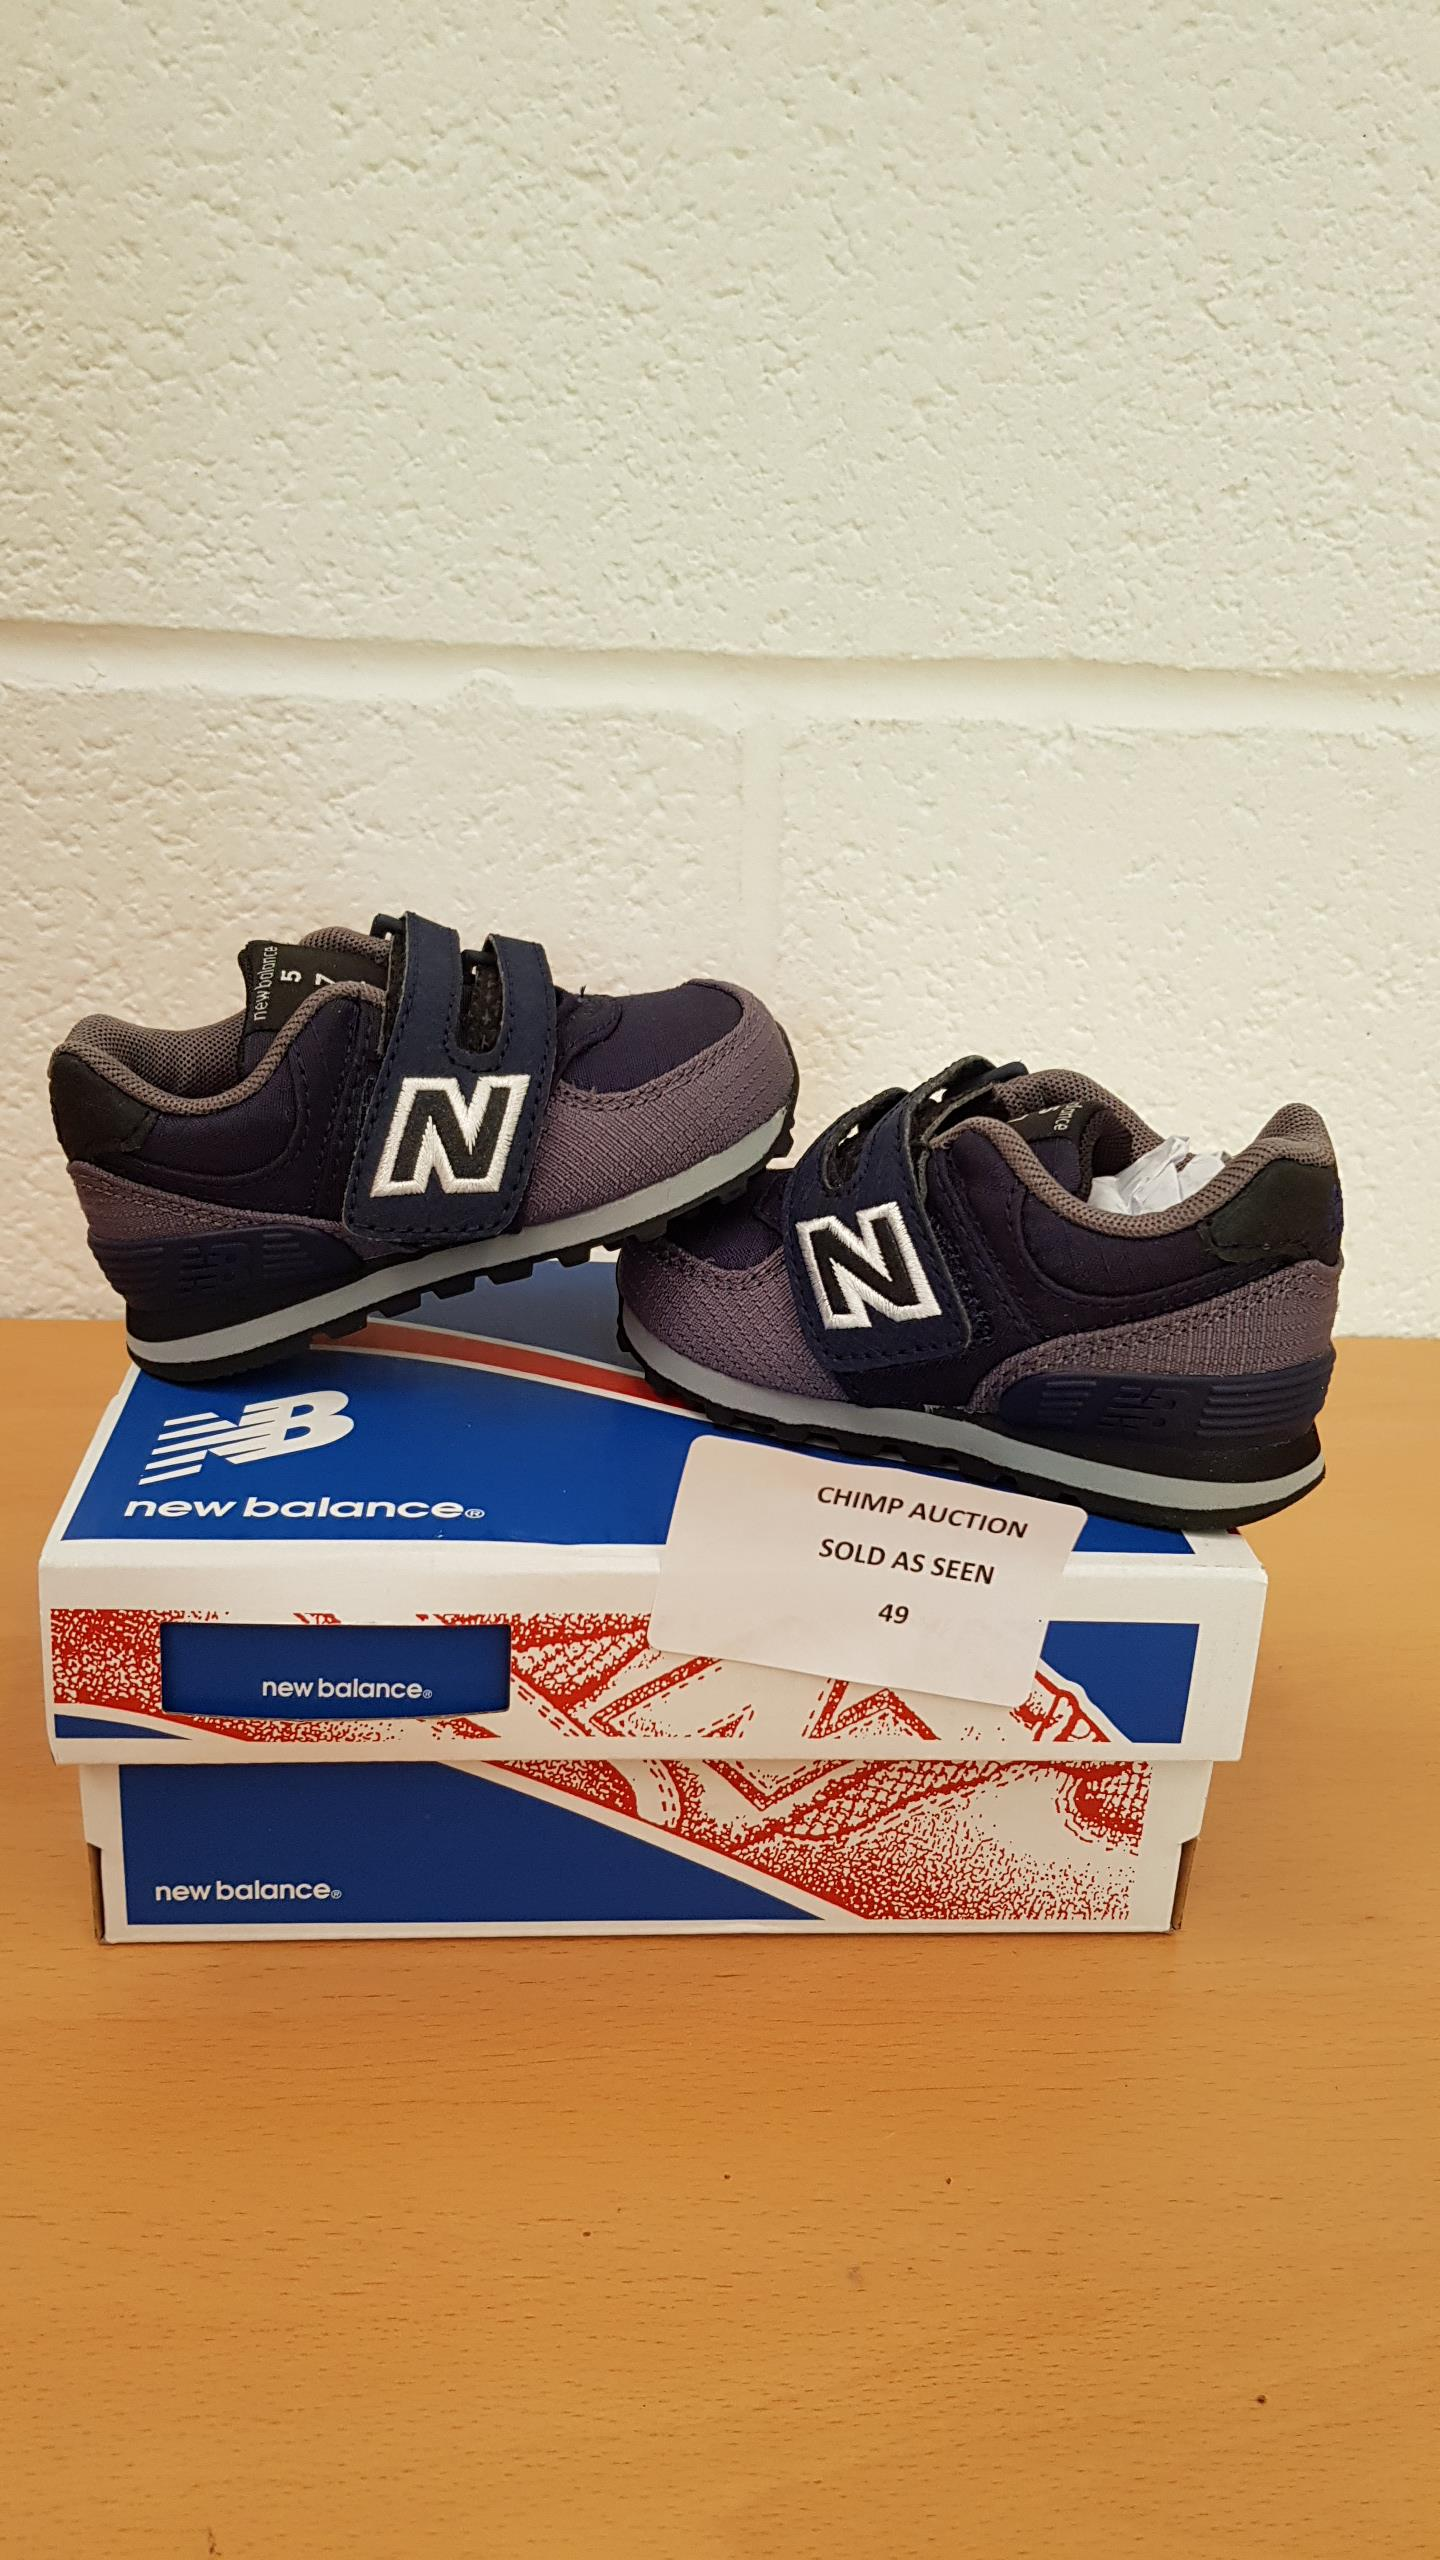 Lot 49 - NEW BALANCE - SPECIAL EDITION kids trainers uk size 3.5